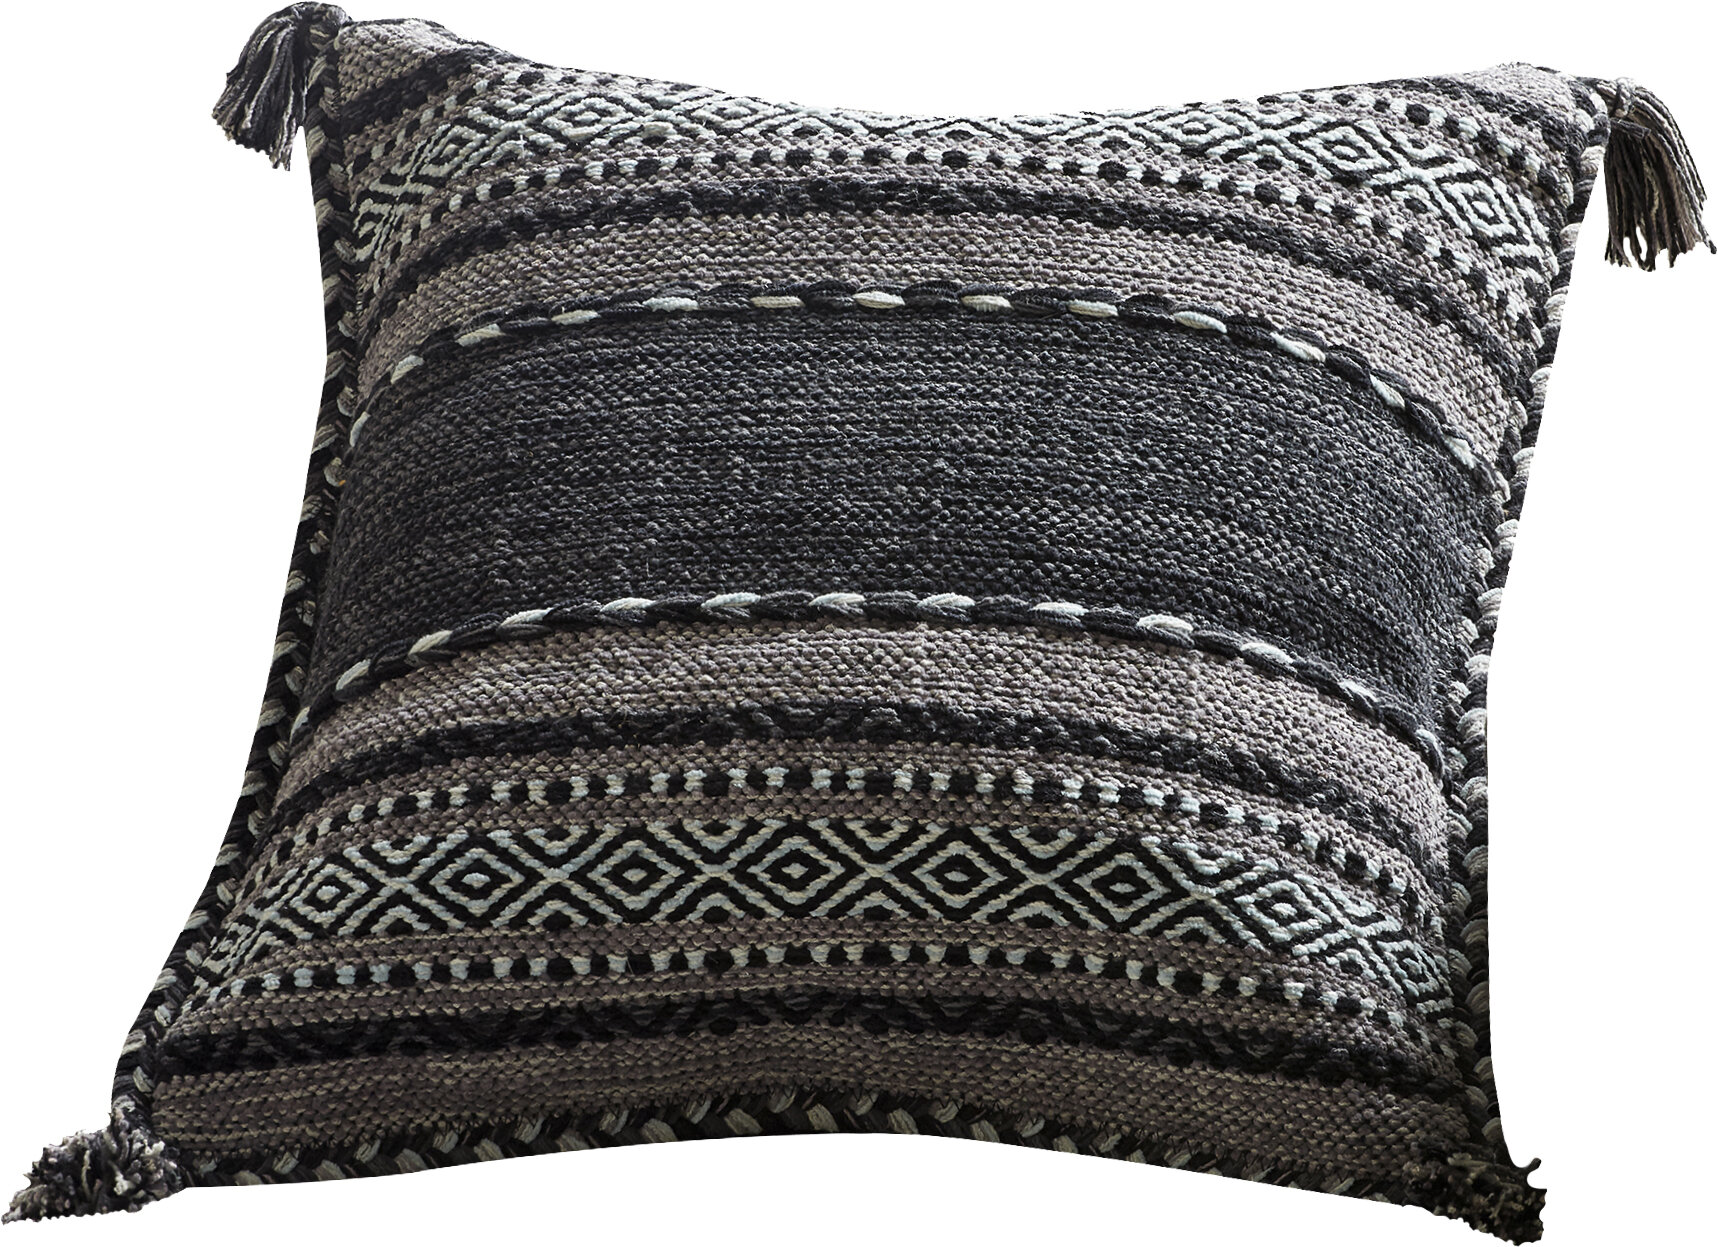 Black Throw Pillows Free Shipping Over 35 Wayfair